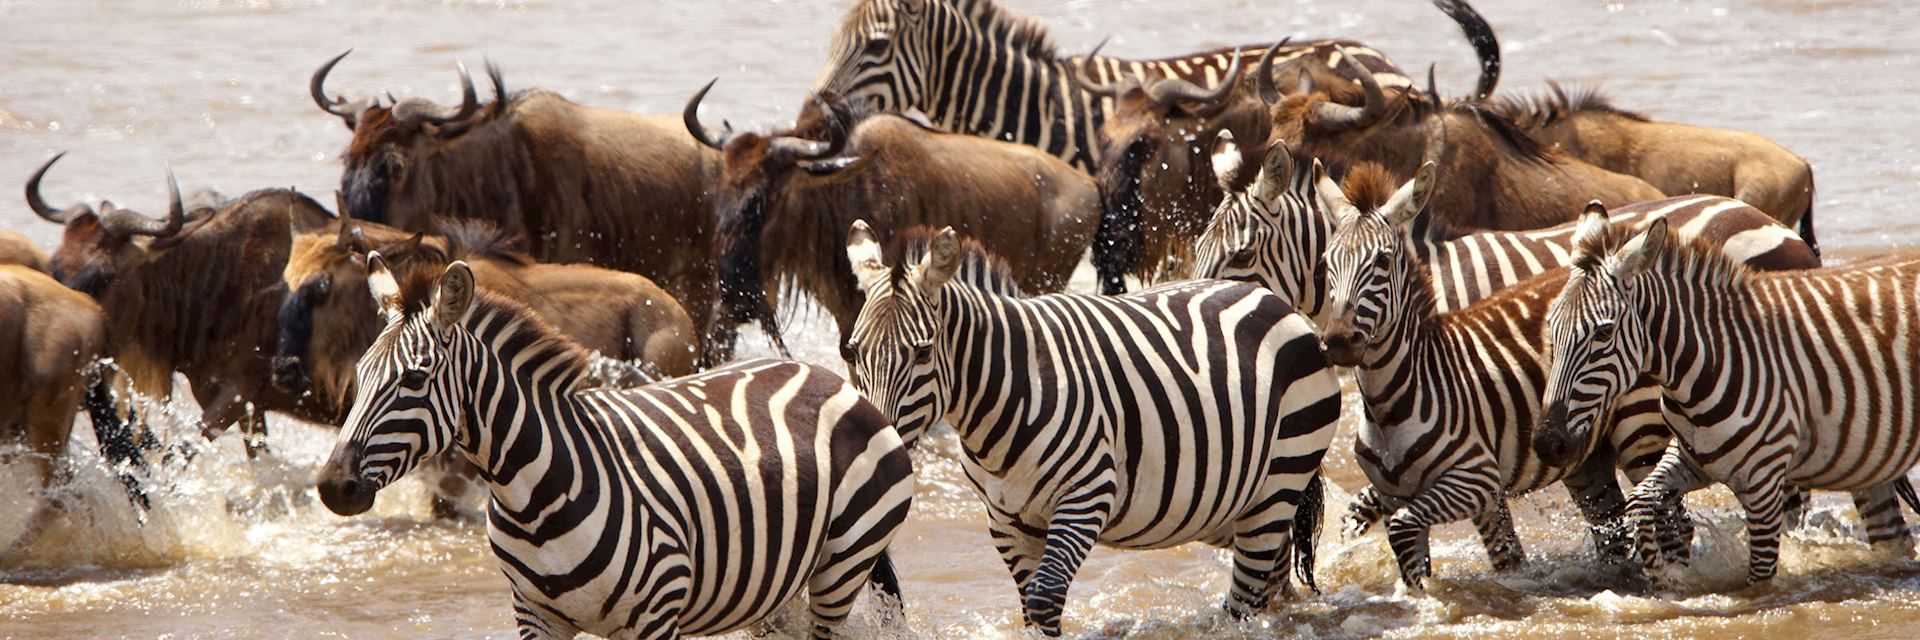 Zebra and wildebeest in South Africa